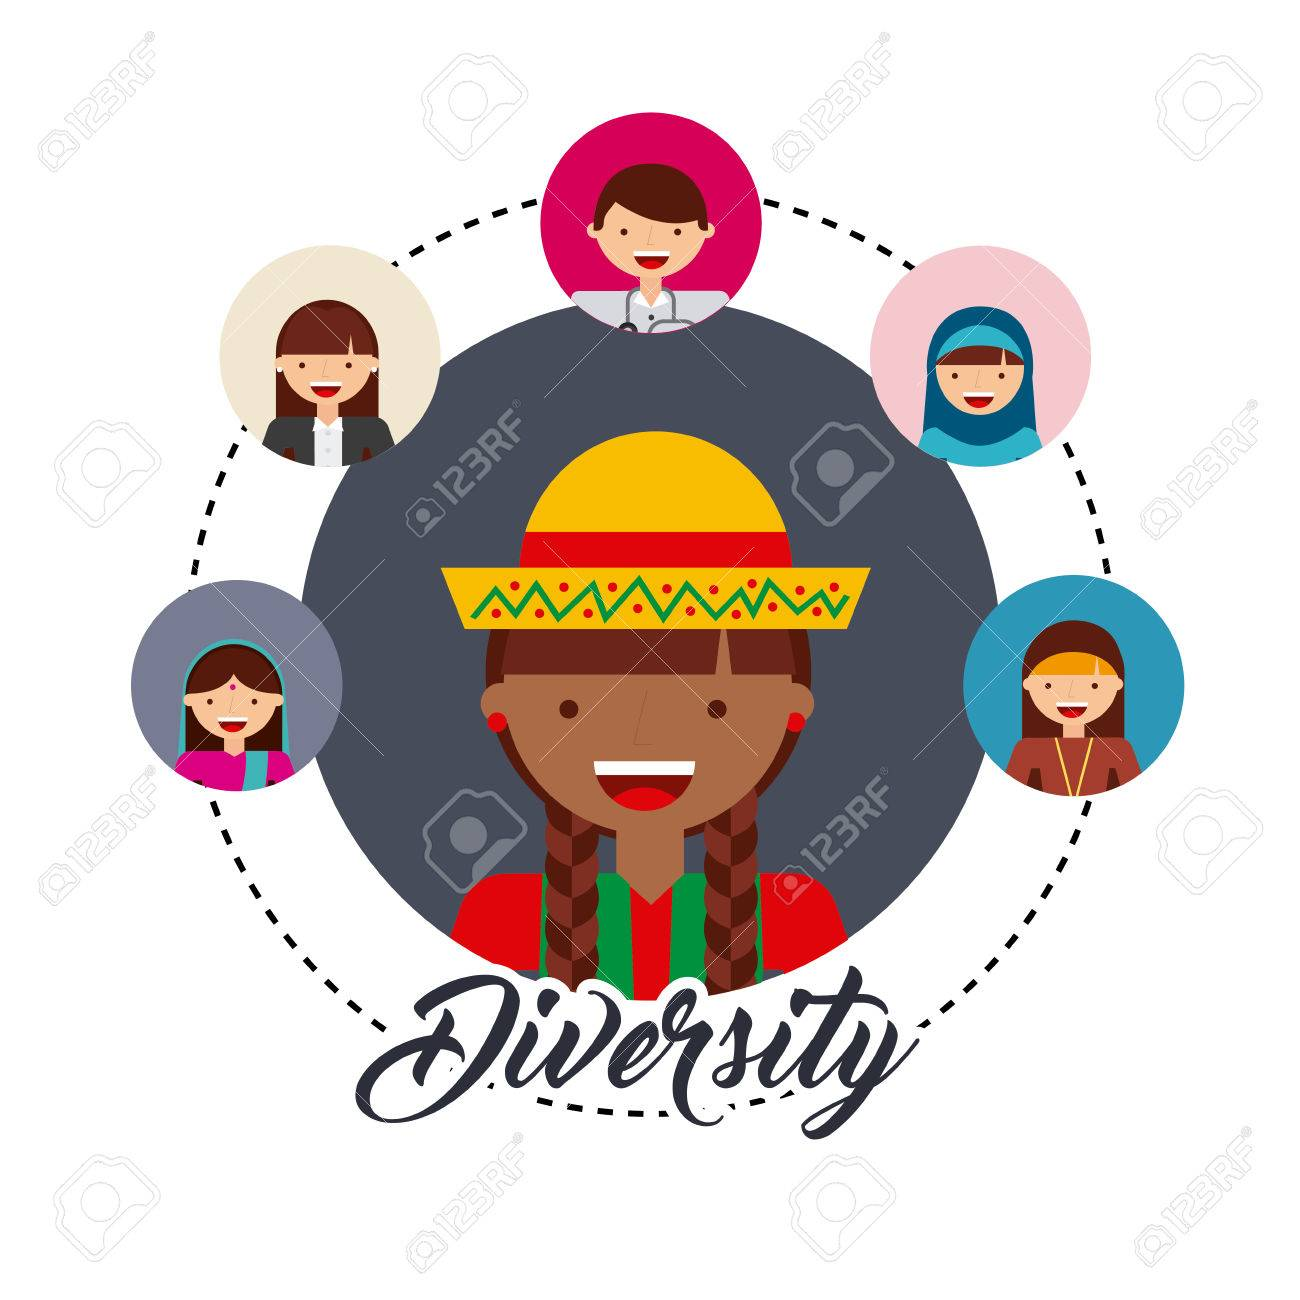 Diversity of world cultures vector illustration design royalty free diversity of world cultures vector illustration design stock vector 62576168 publicscrutiny Choice Image